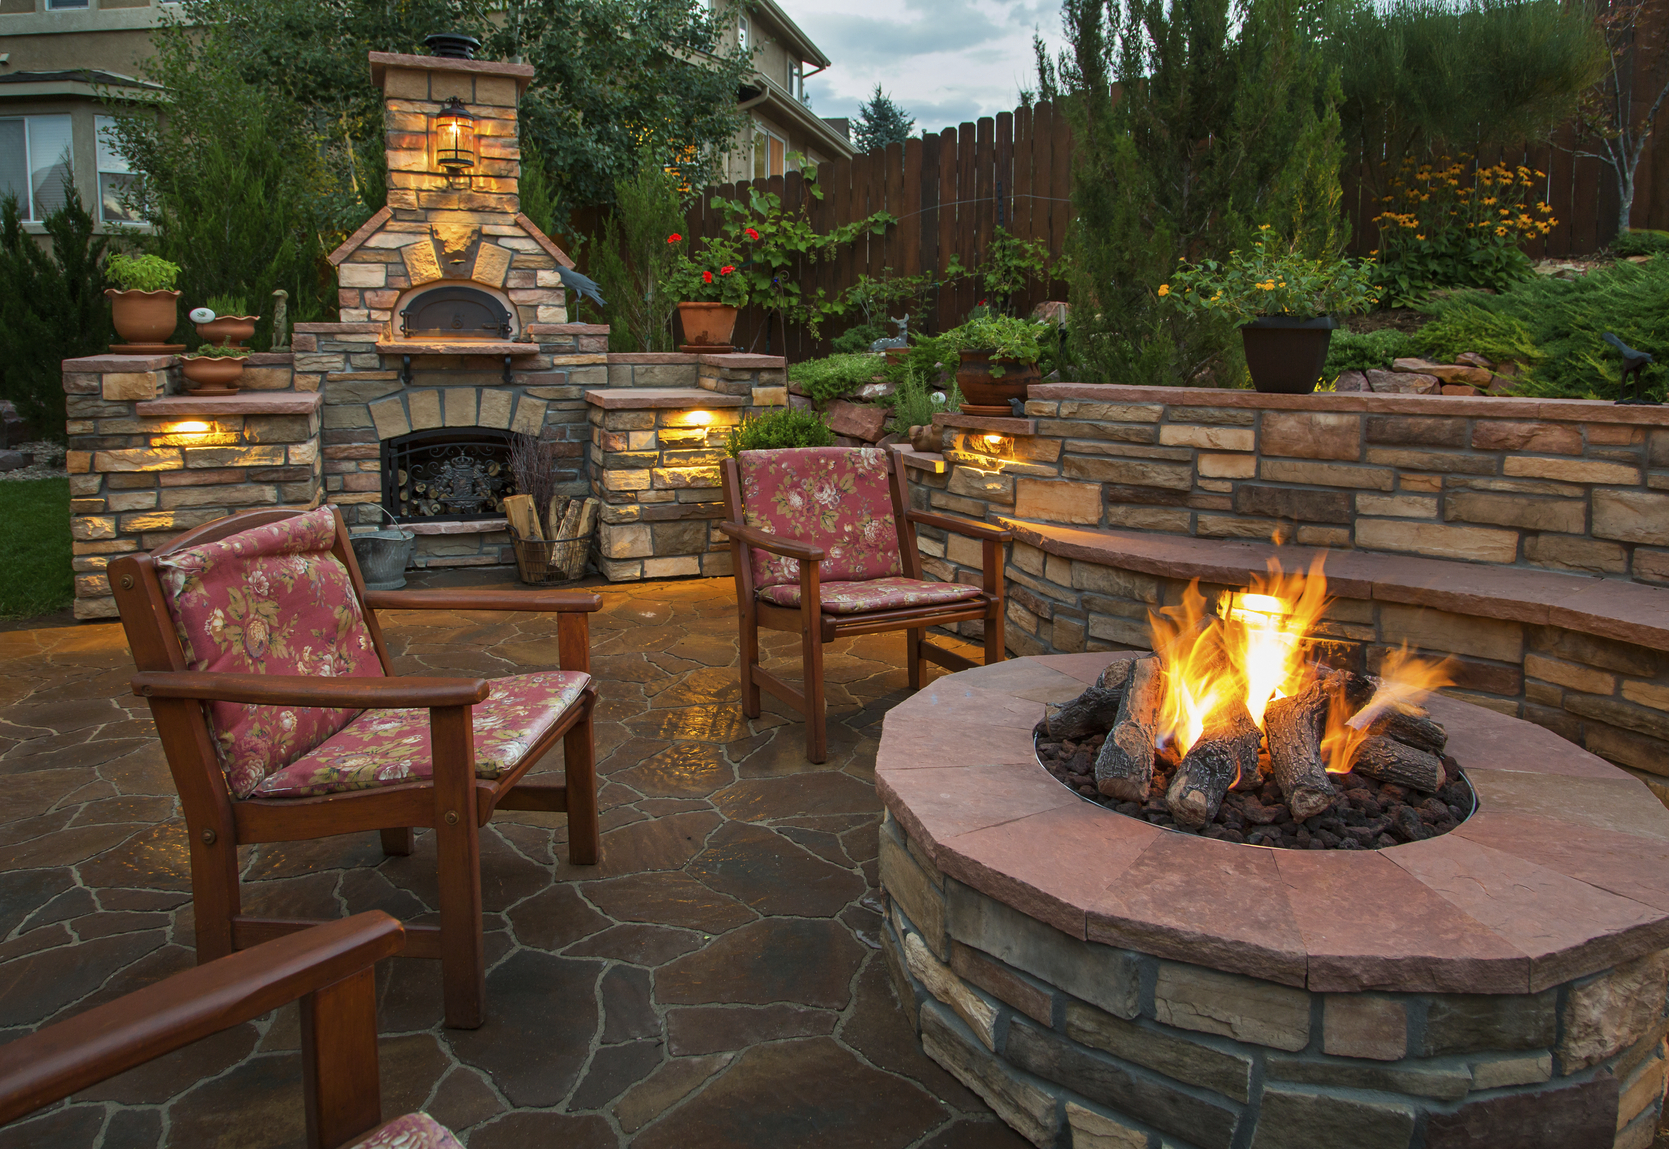 Peachy Firepit 2 Backyardvision Com Download Free Architecture Designs Scobabritishbridgeorg